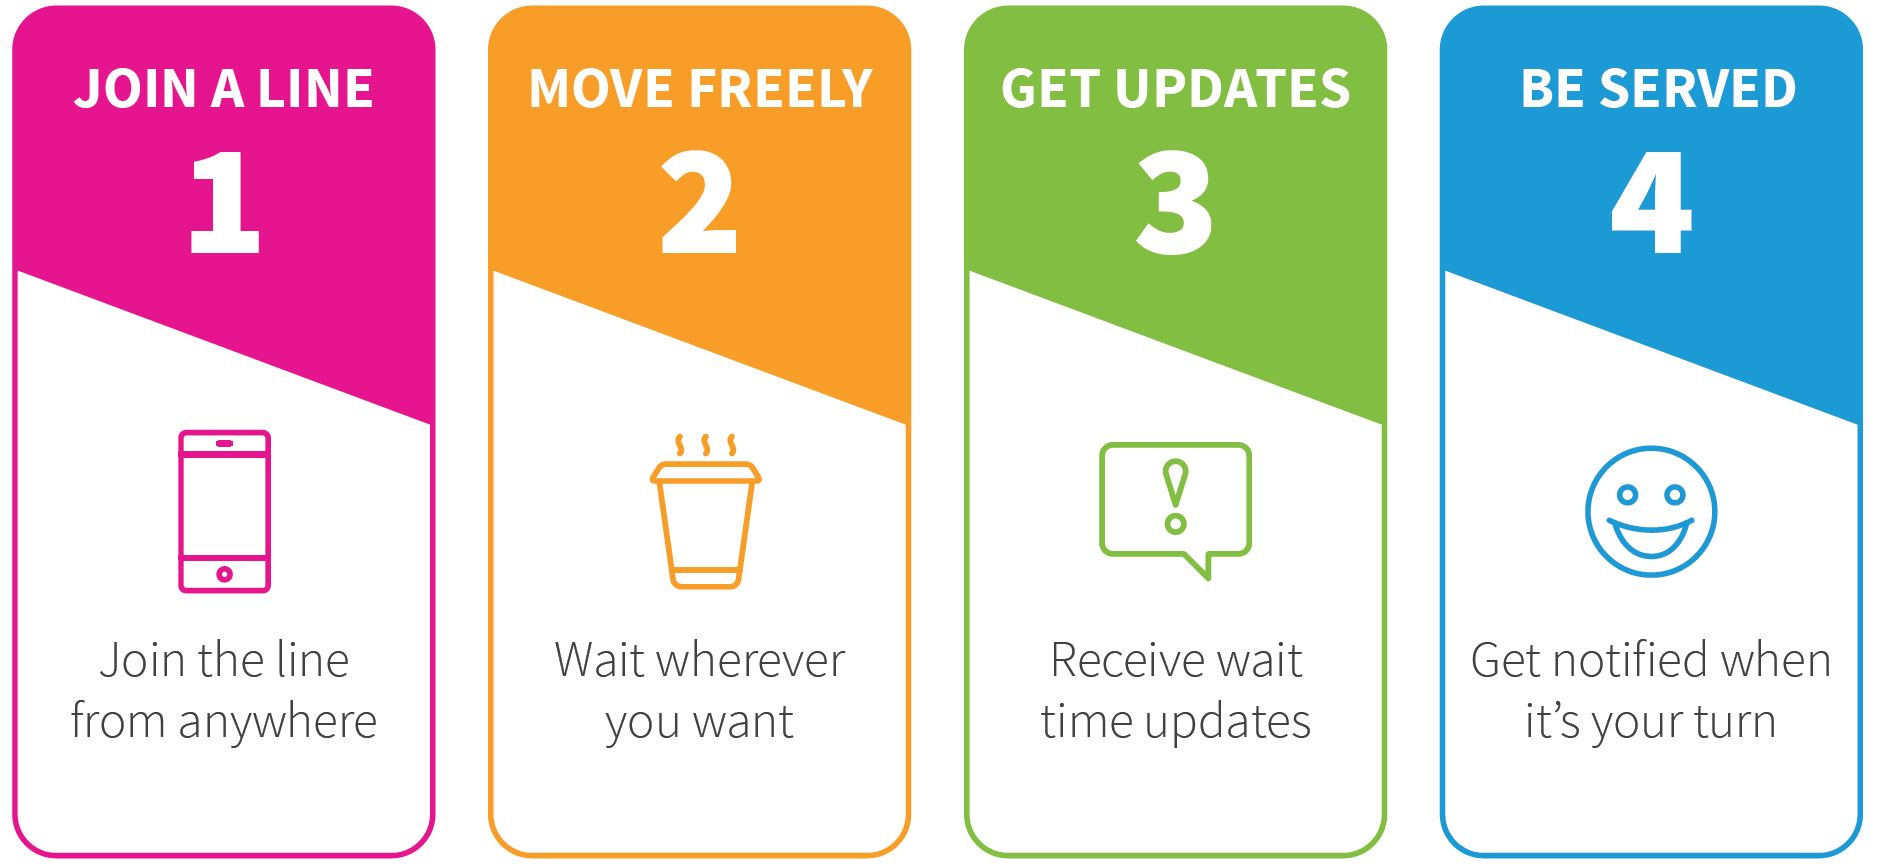 QLess steps: 1. join a line; 2. move freely; 3. get updates; 4. be served